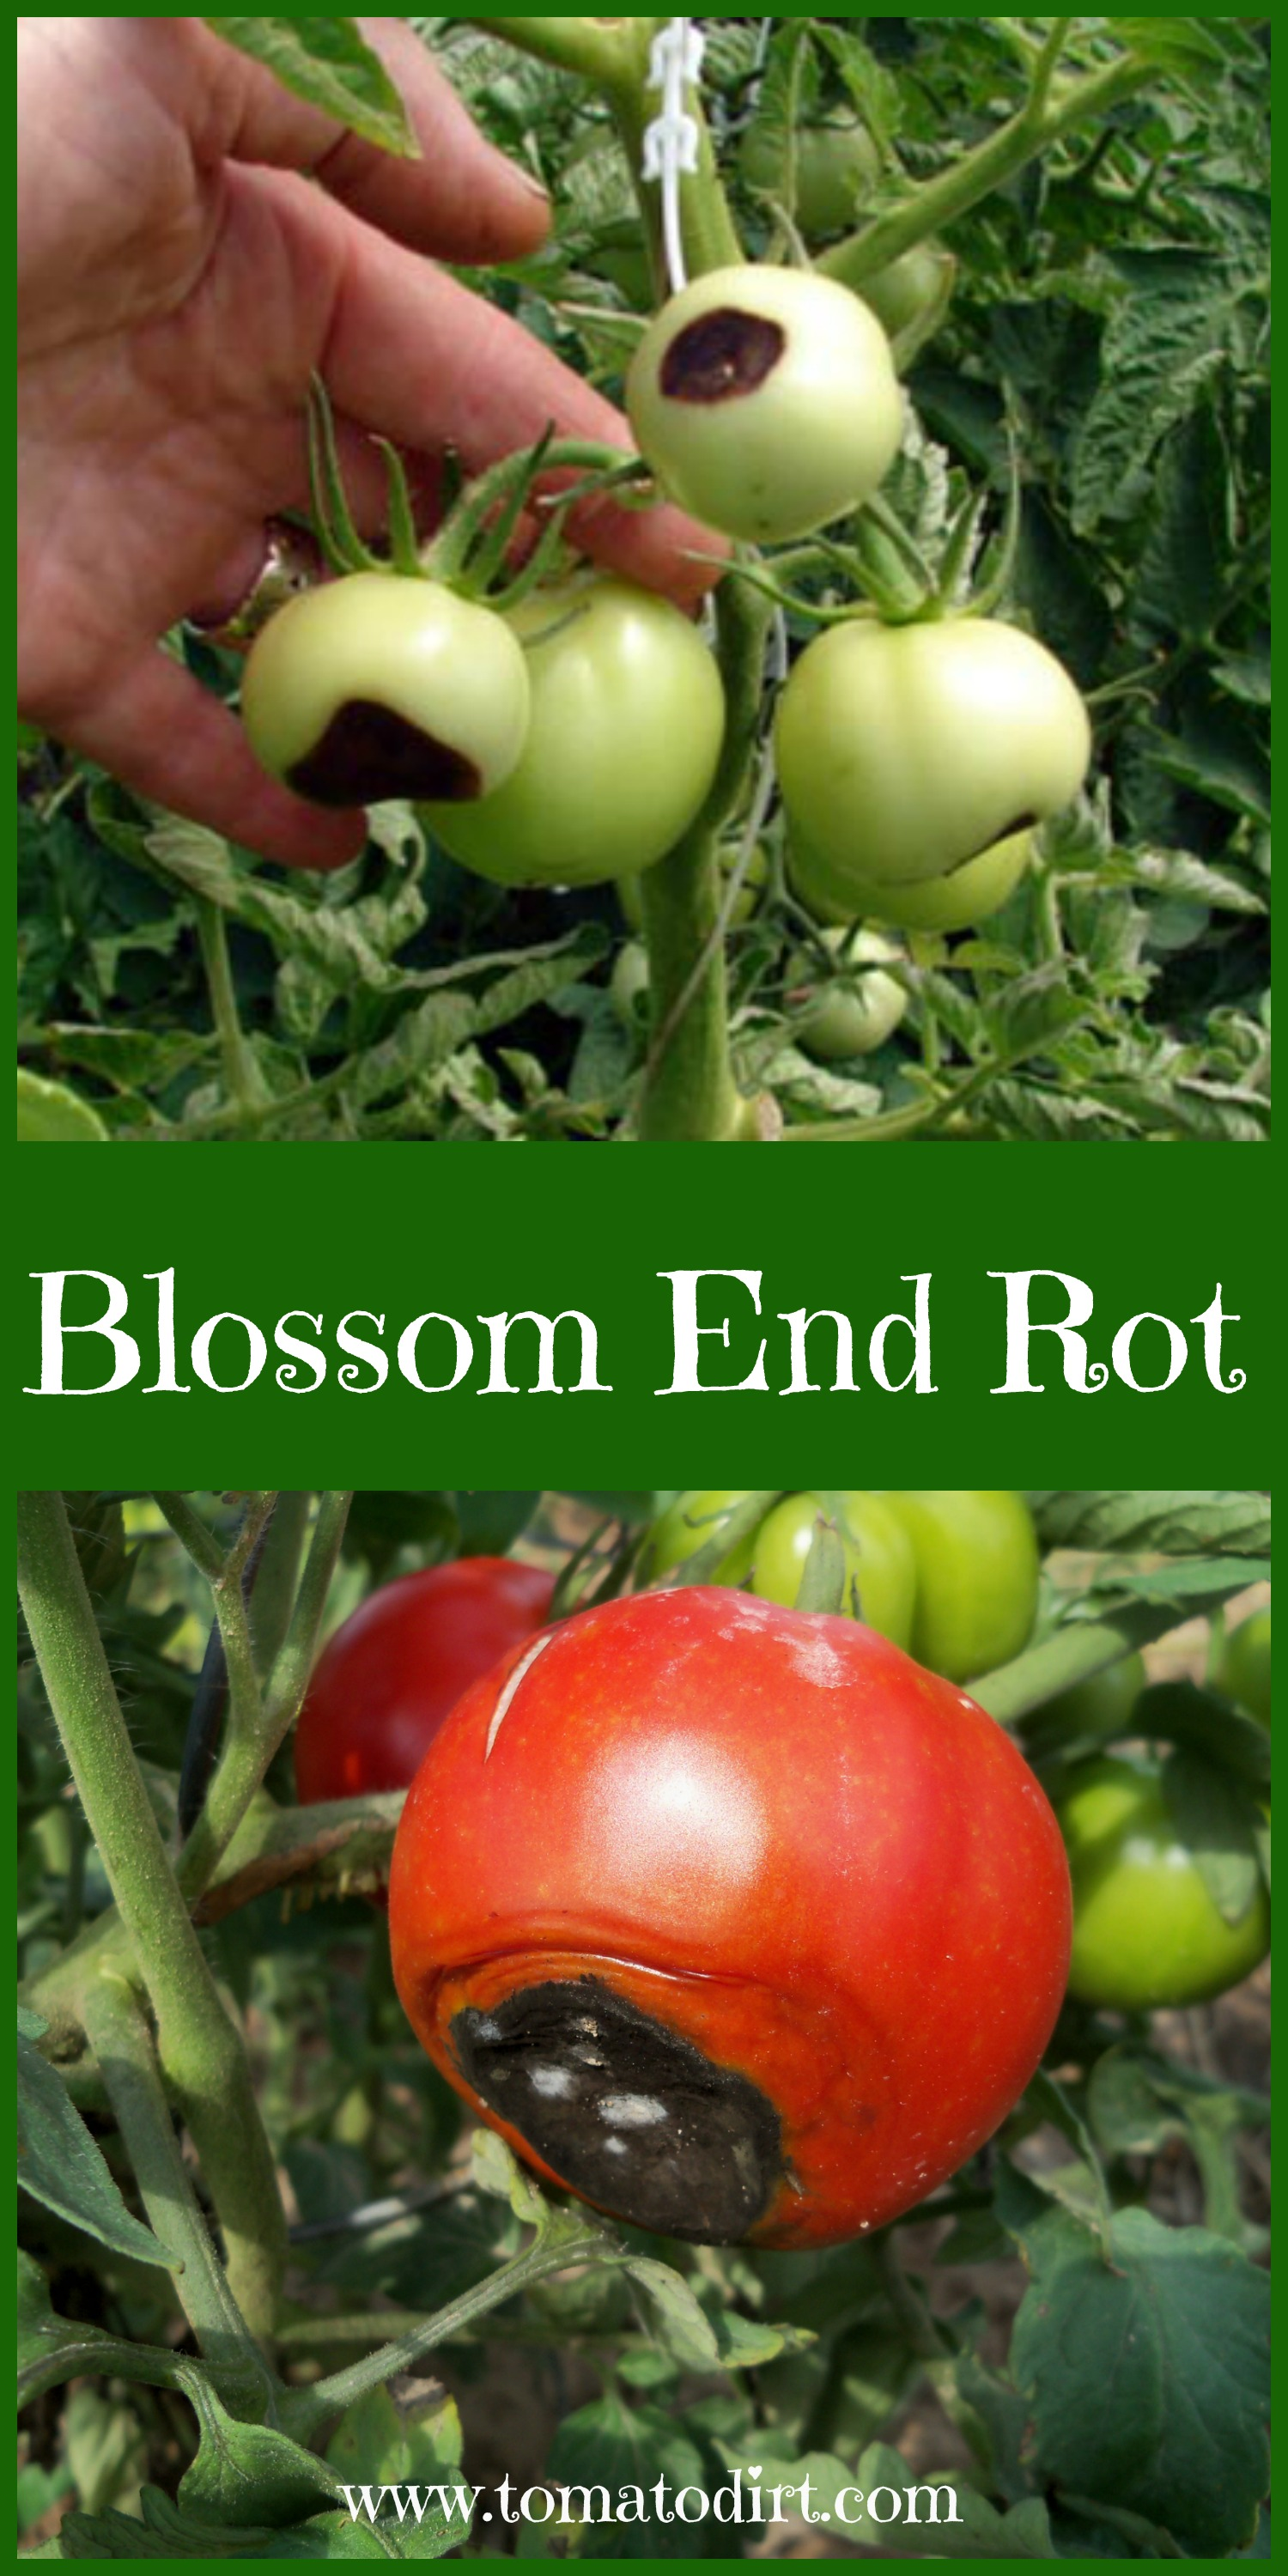 Blossom end rot: how to identify, treat, and prevent it